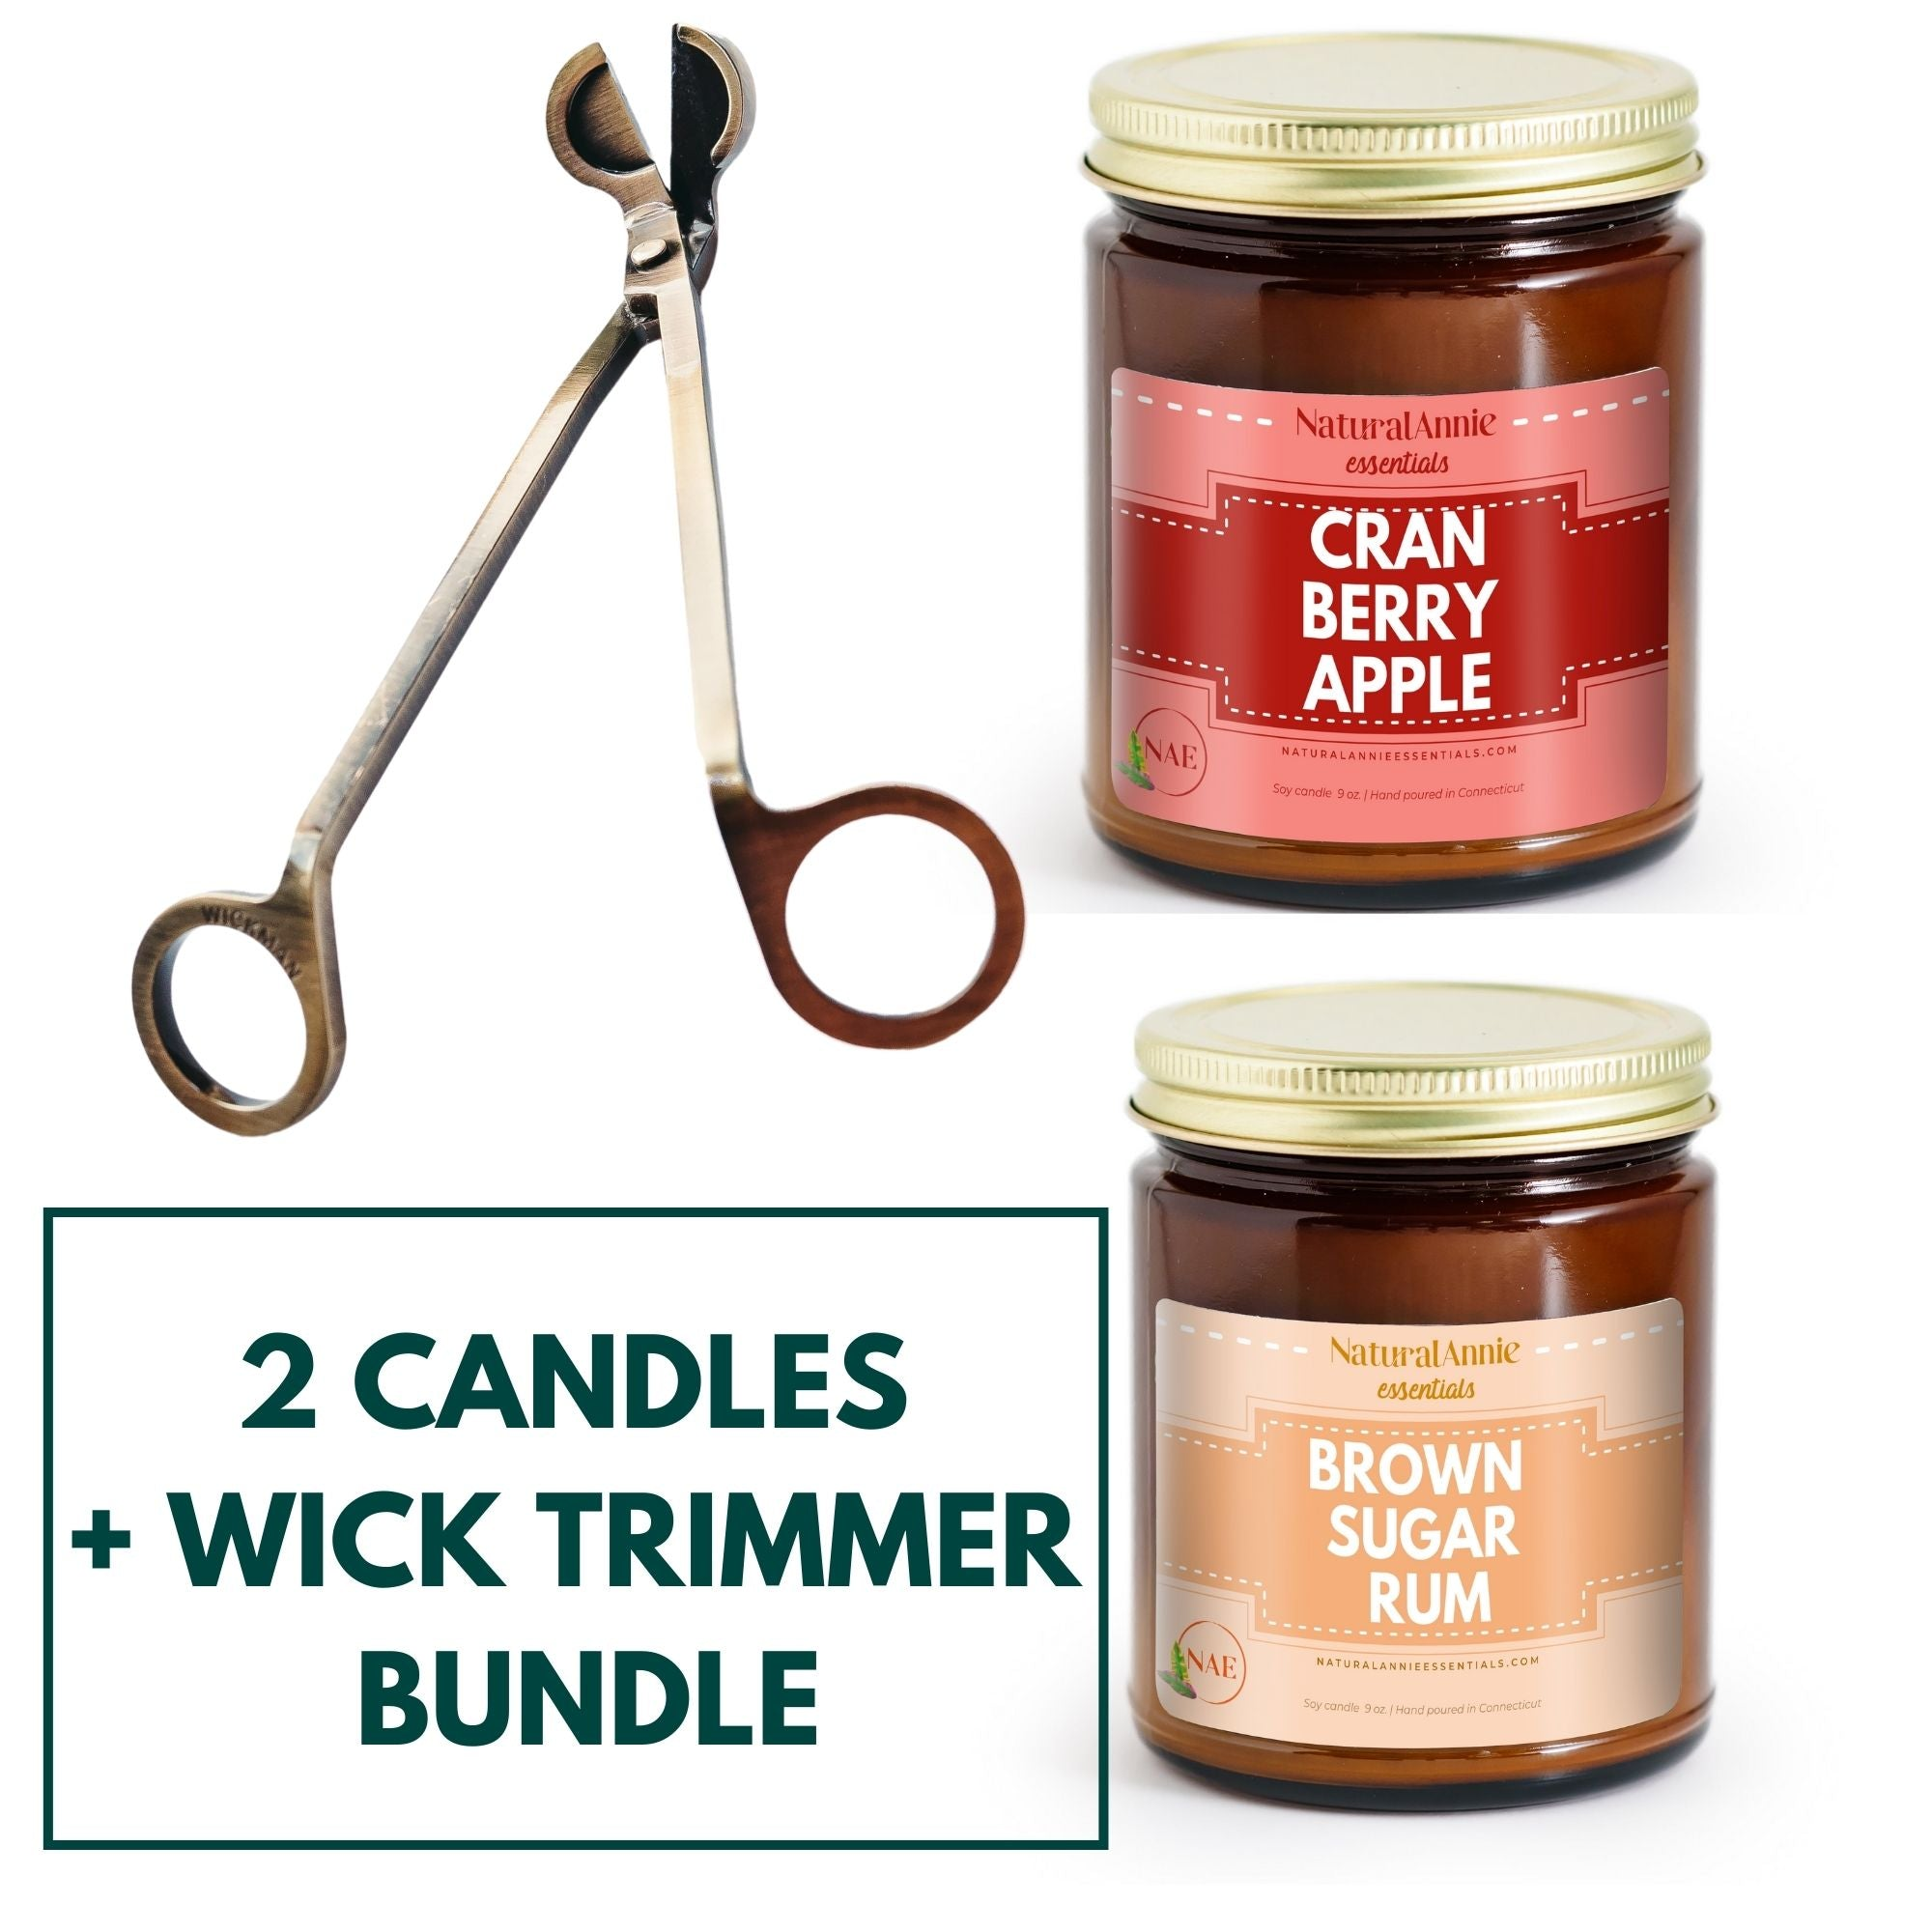 BAKED COLLECTION 4 OZ CANDLE & WICK TRIMMER BUNDLE